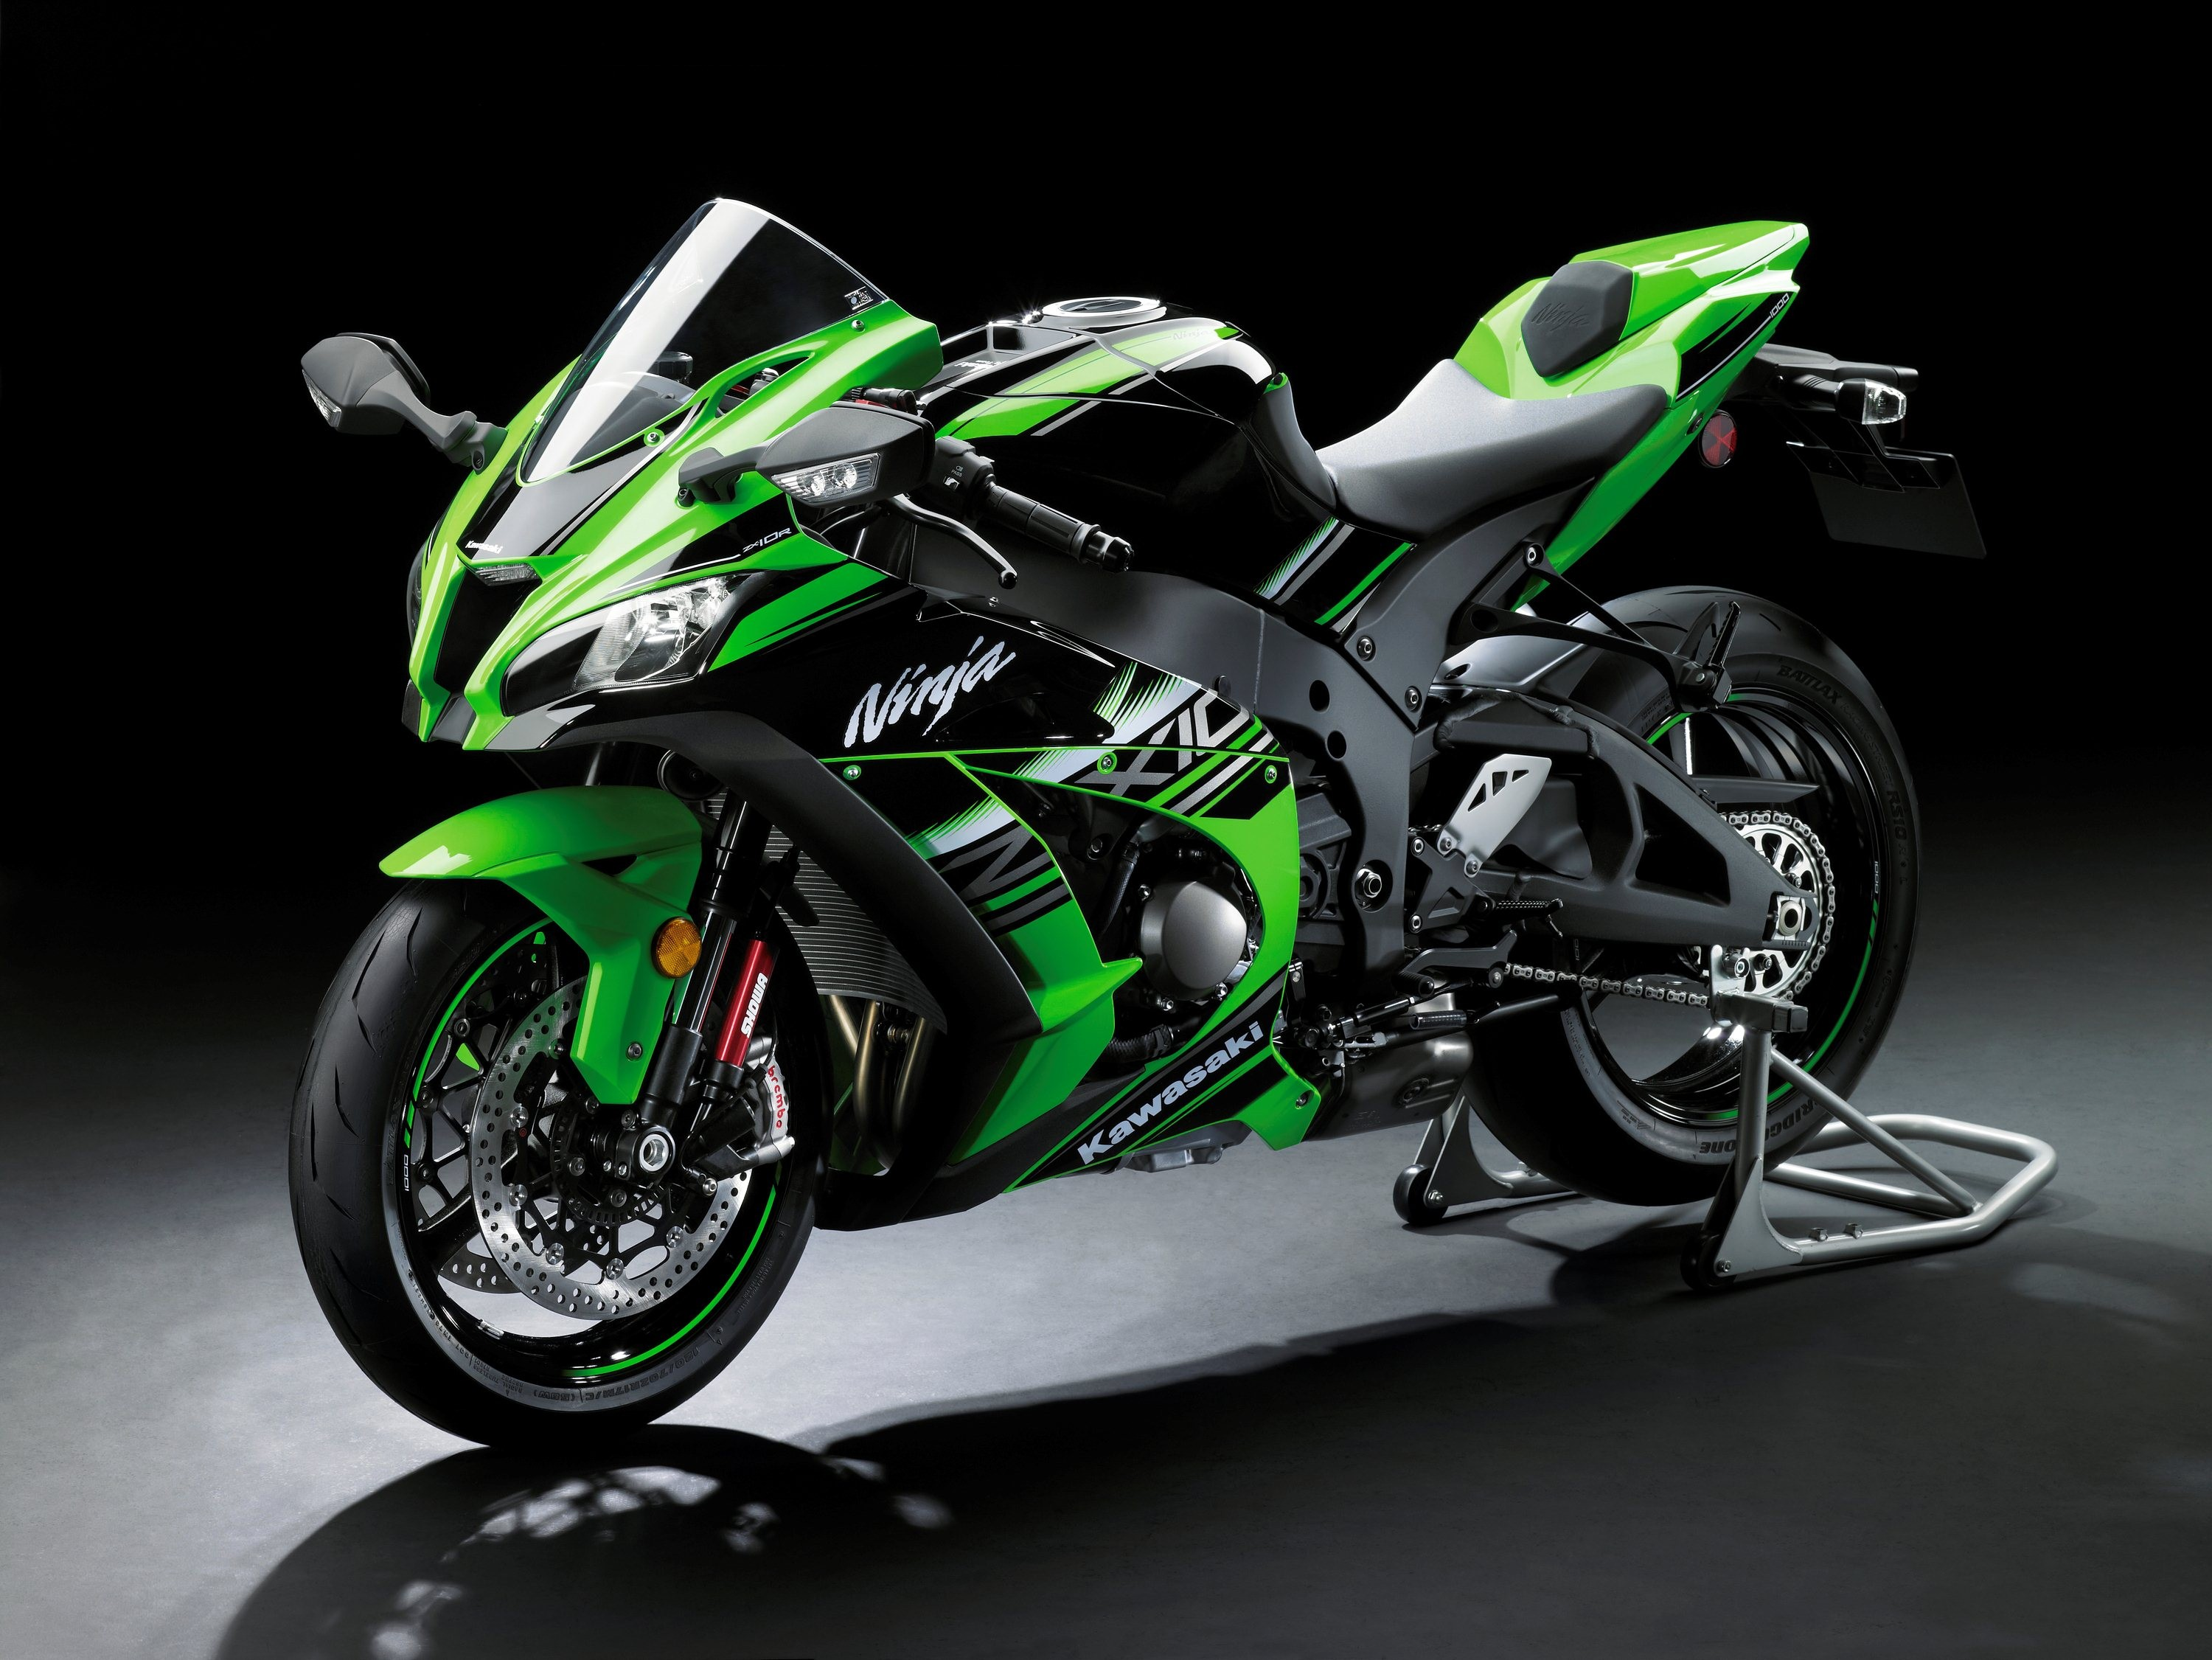 wallpaper kawasaki ninja h2r sport bikes best bikes best motorcycle cars bikes 12008. Black Bedroom Furniture Sets. Home Design Ideas